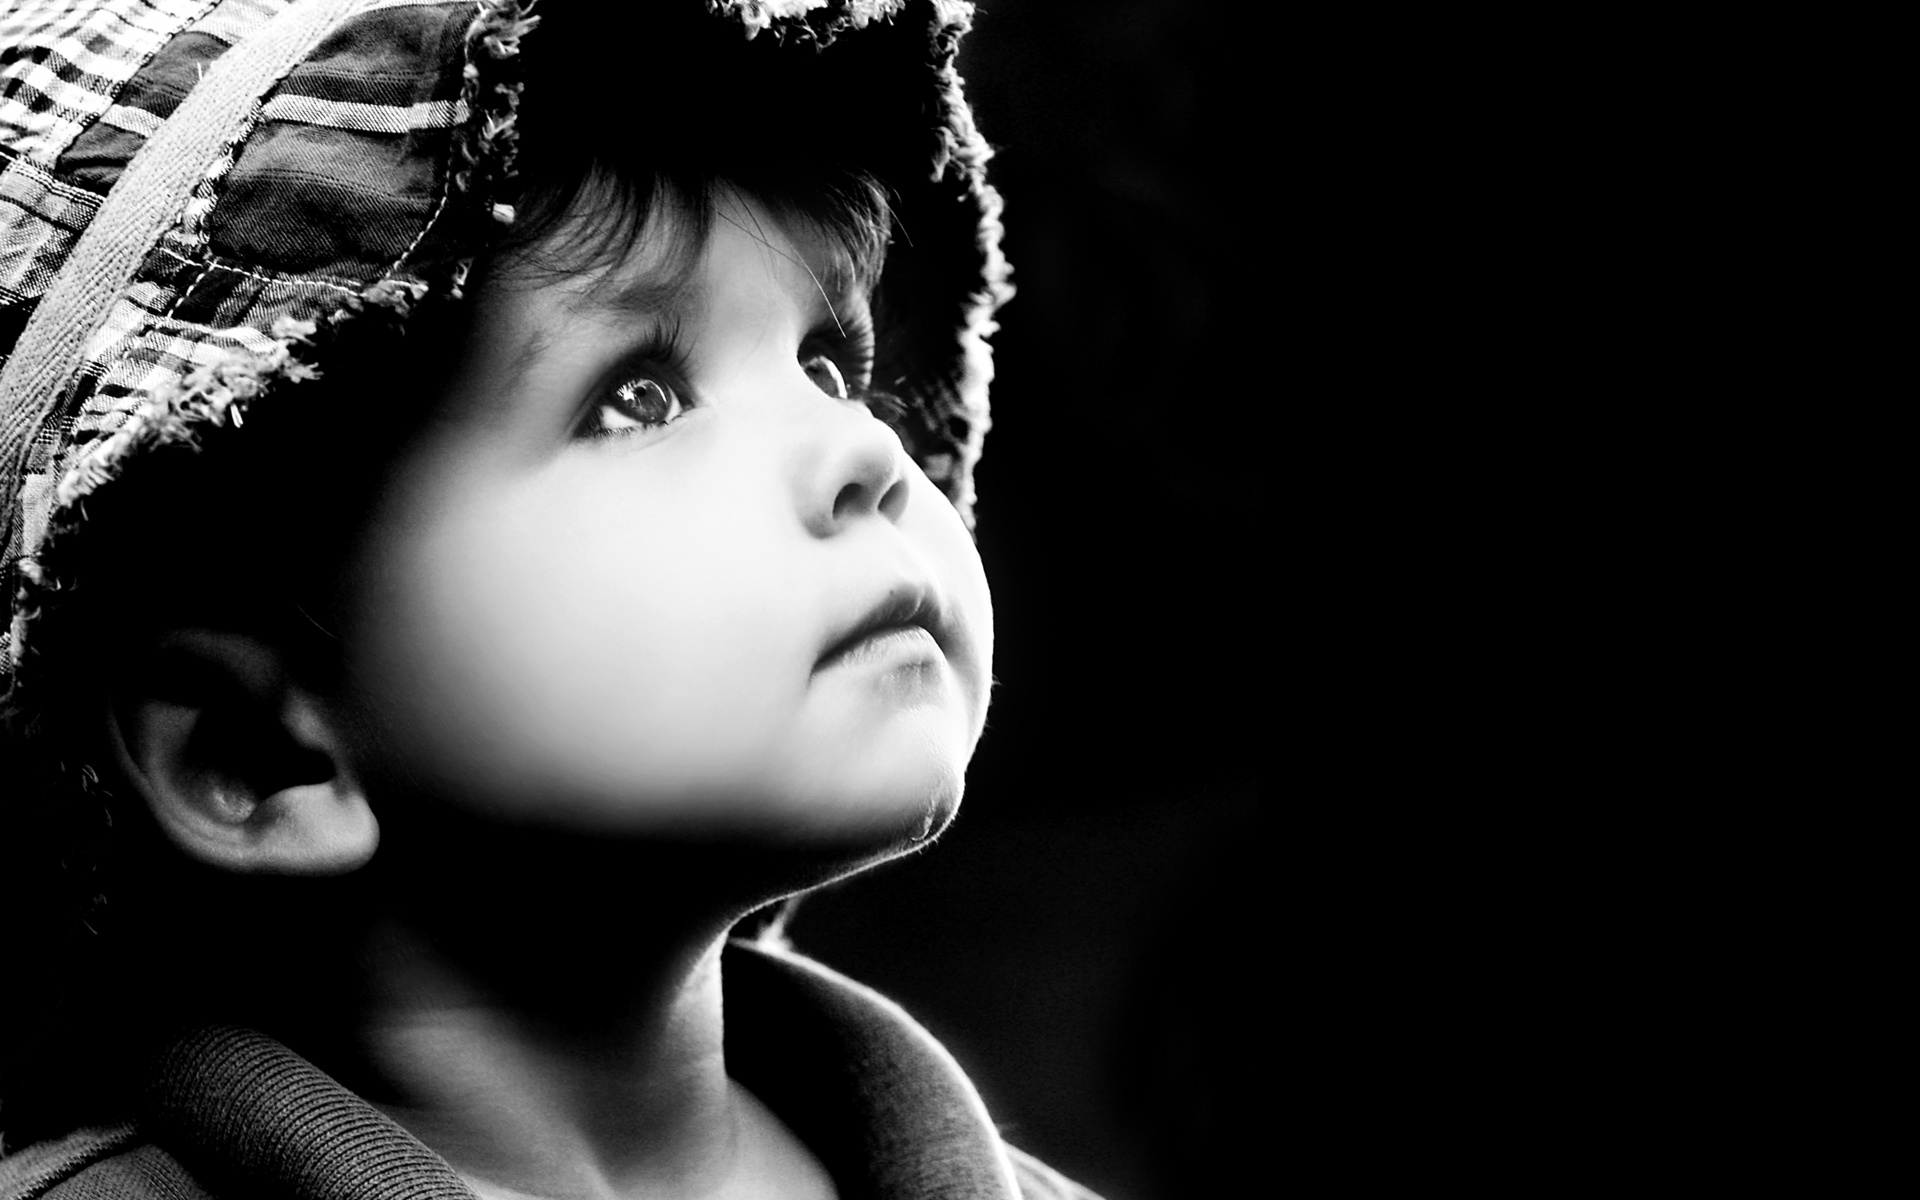 Children child cute people black and white black white b w wallpaper 1920x1200 24286 wallpaperup